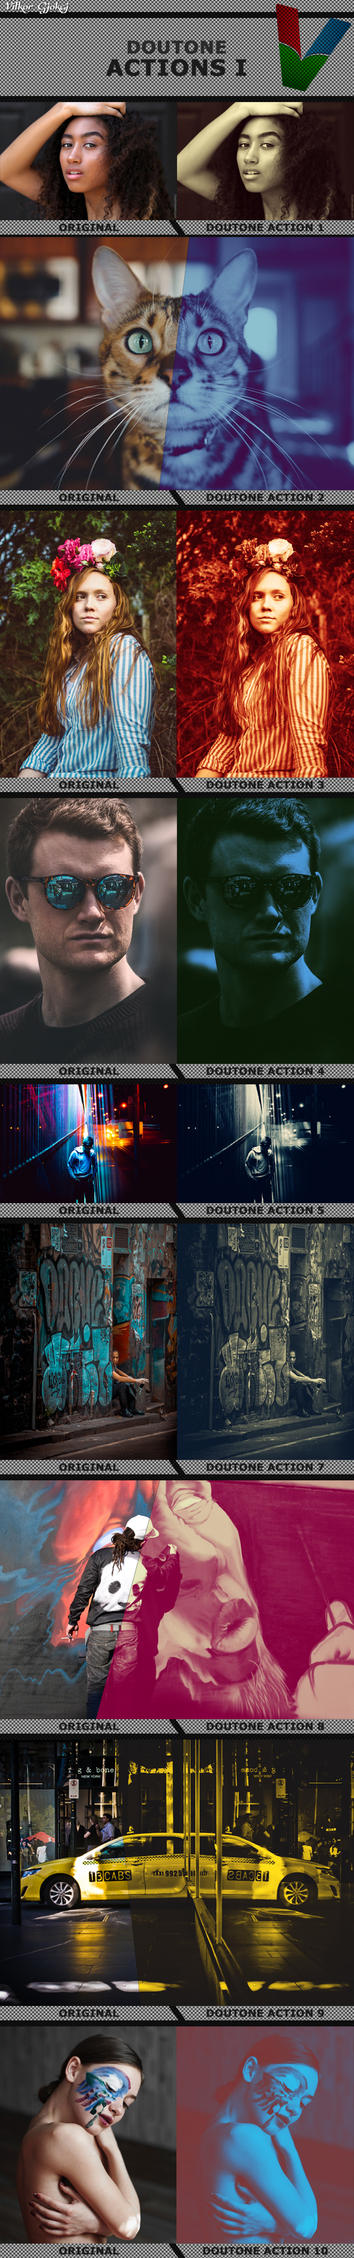 Doutone Photoshop Actions 1 by ViktorGjokaj